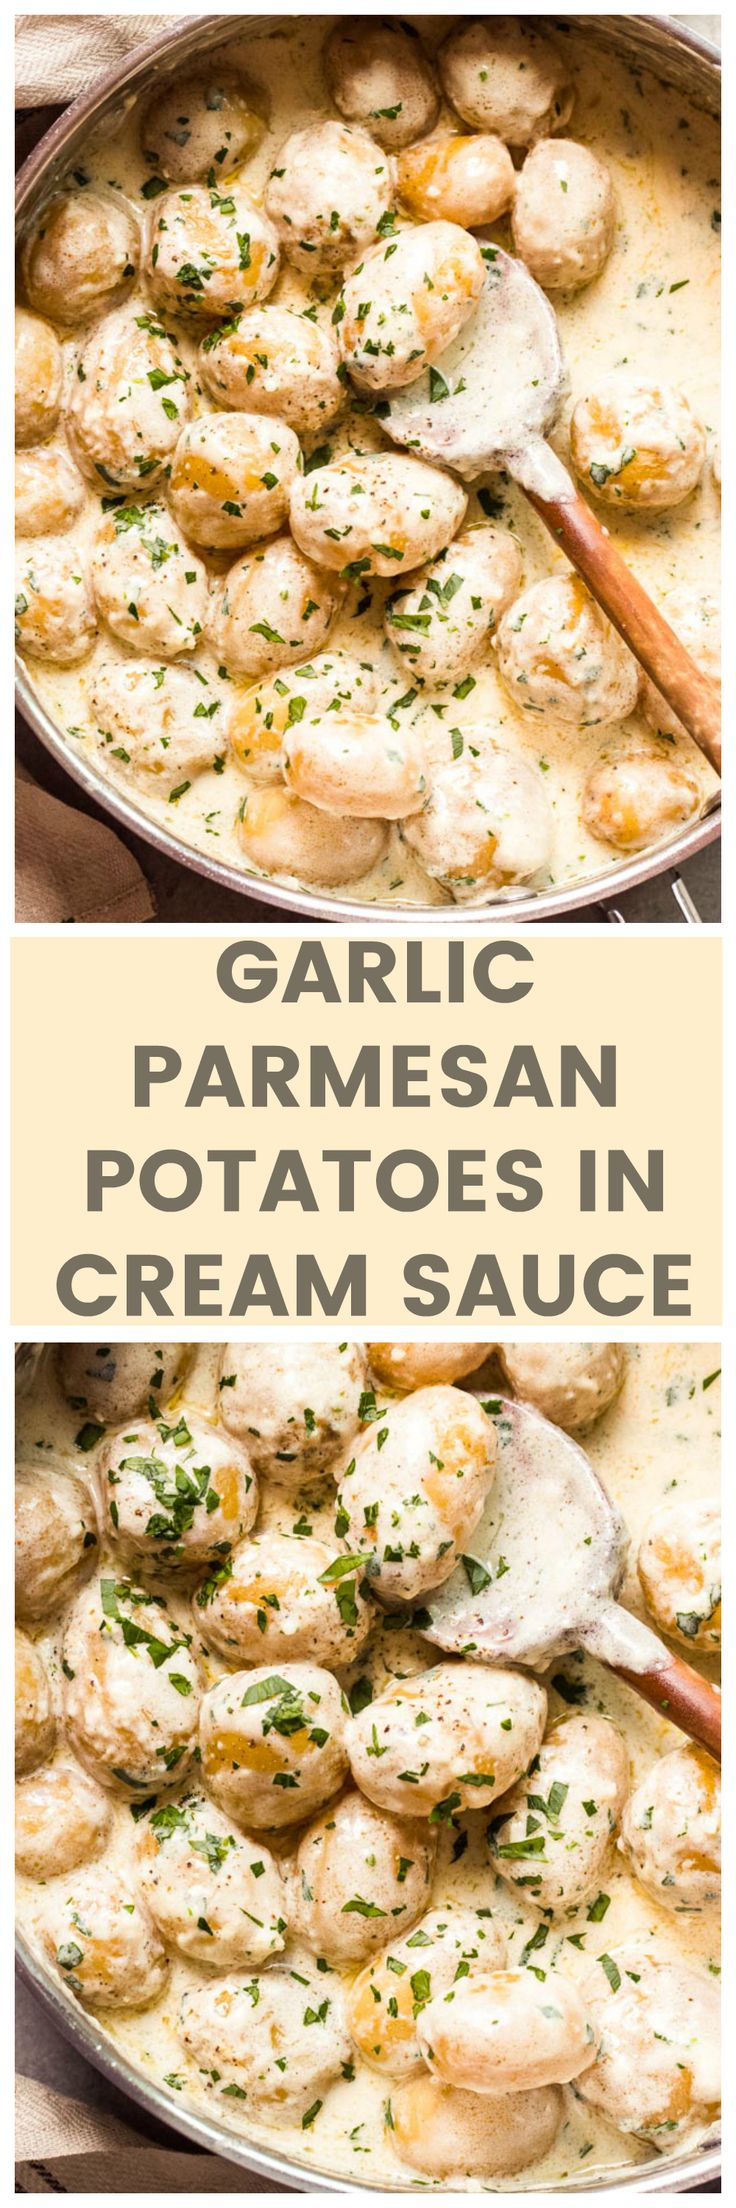 Garlic Parmesan Potatoes in Cream Sauce